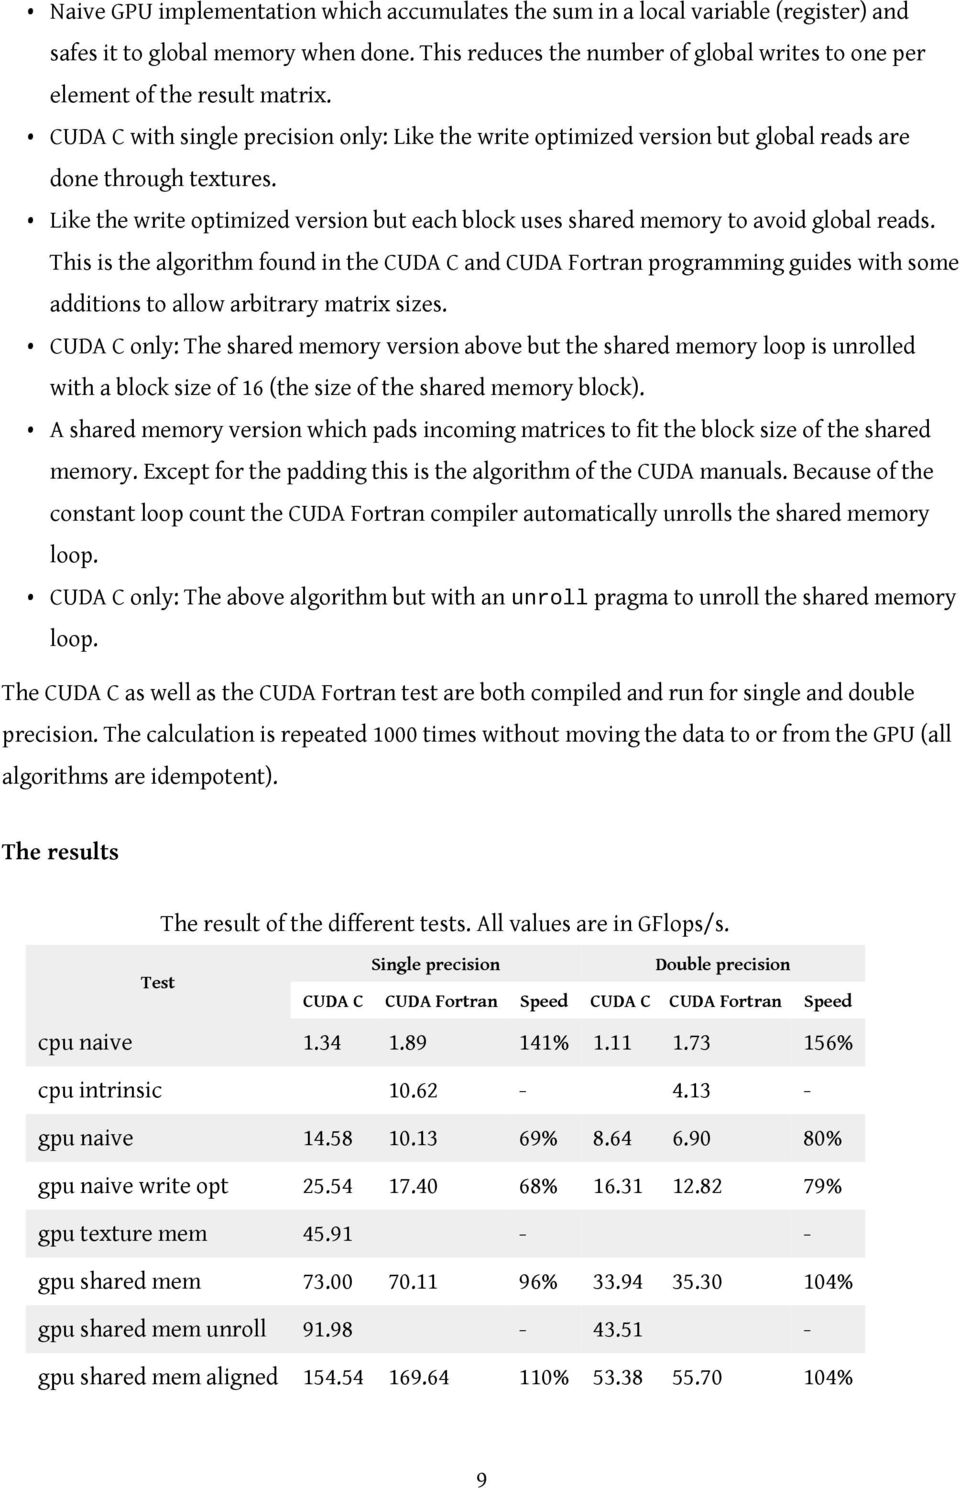 Like the write optimized version but each block uses shared memory to avoid global reads.